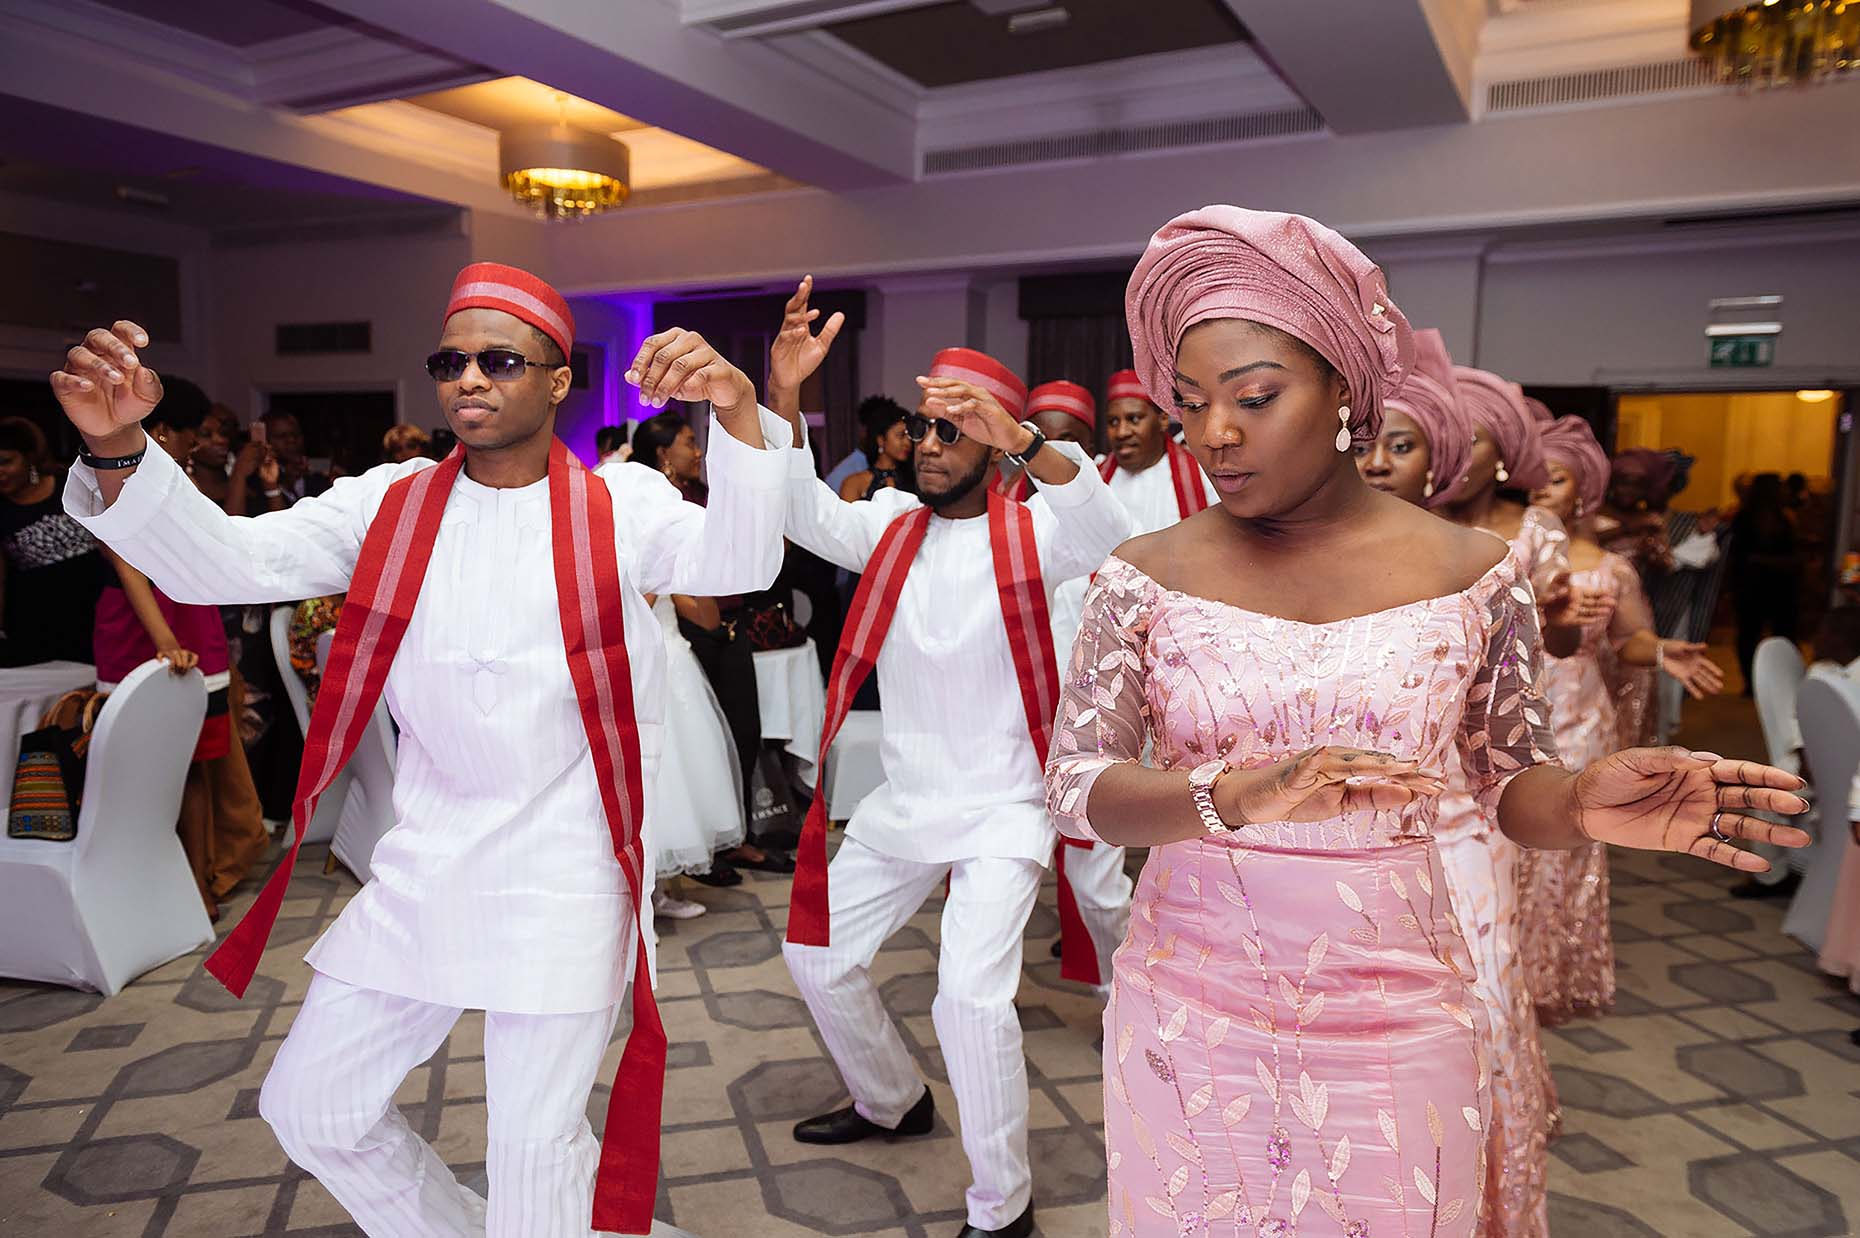 nigerian-wedding-london-connaught-rooms-dancing-african-11